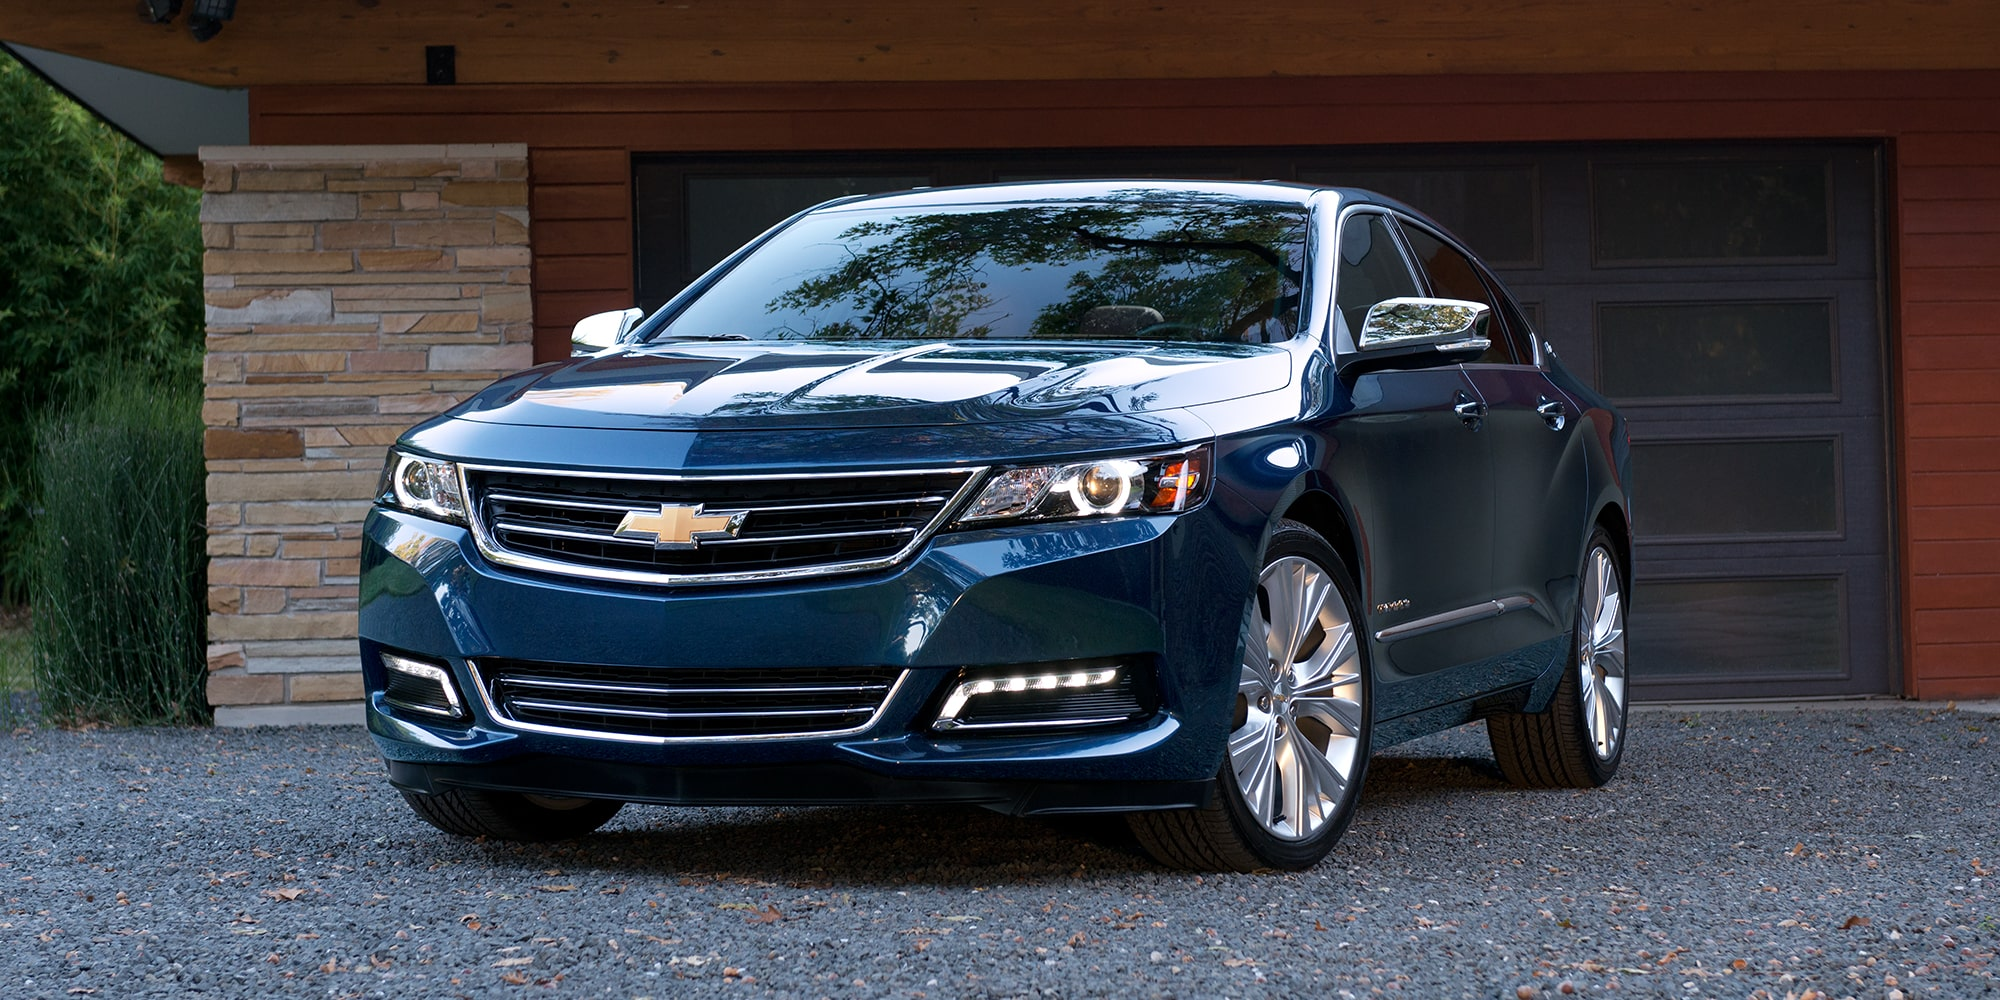 2015 Chevrolet Impala Ss  pixshark   Images Galleries With A Bite!